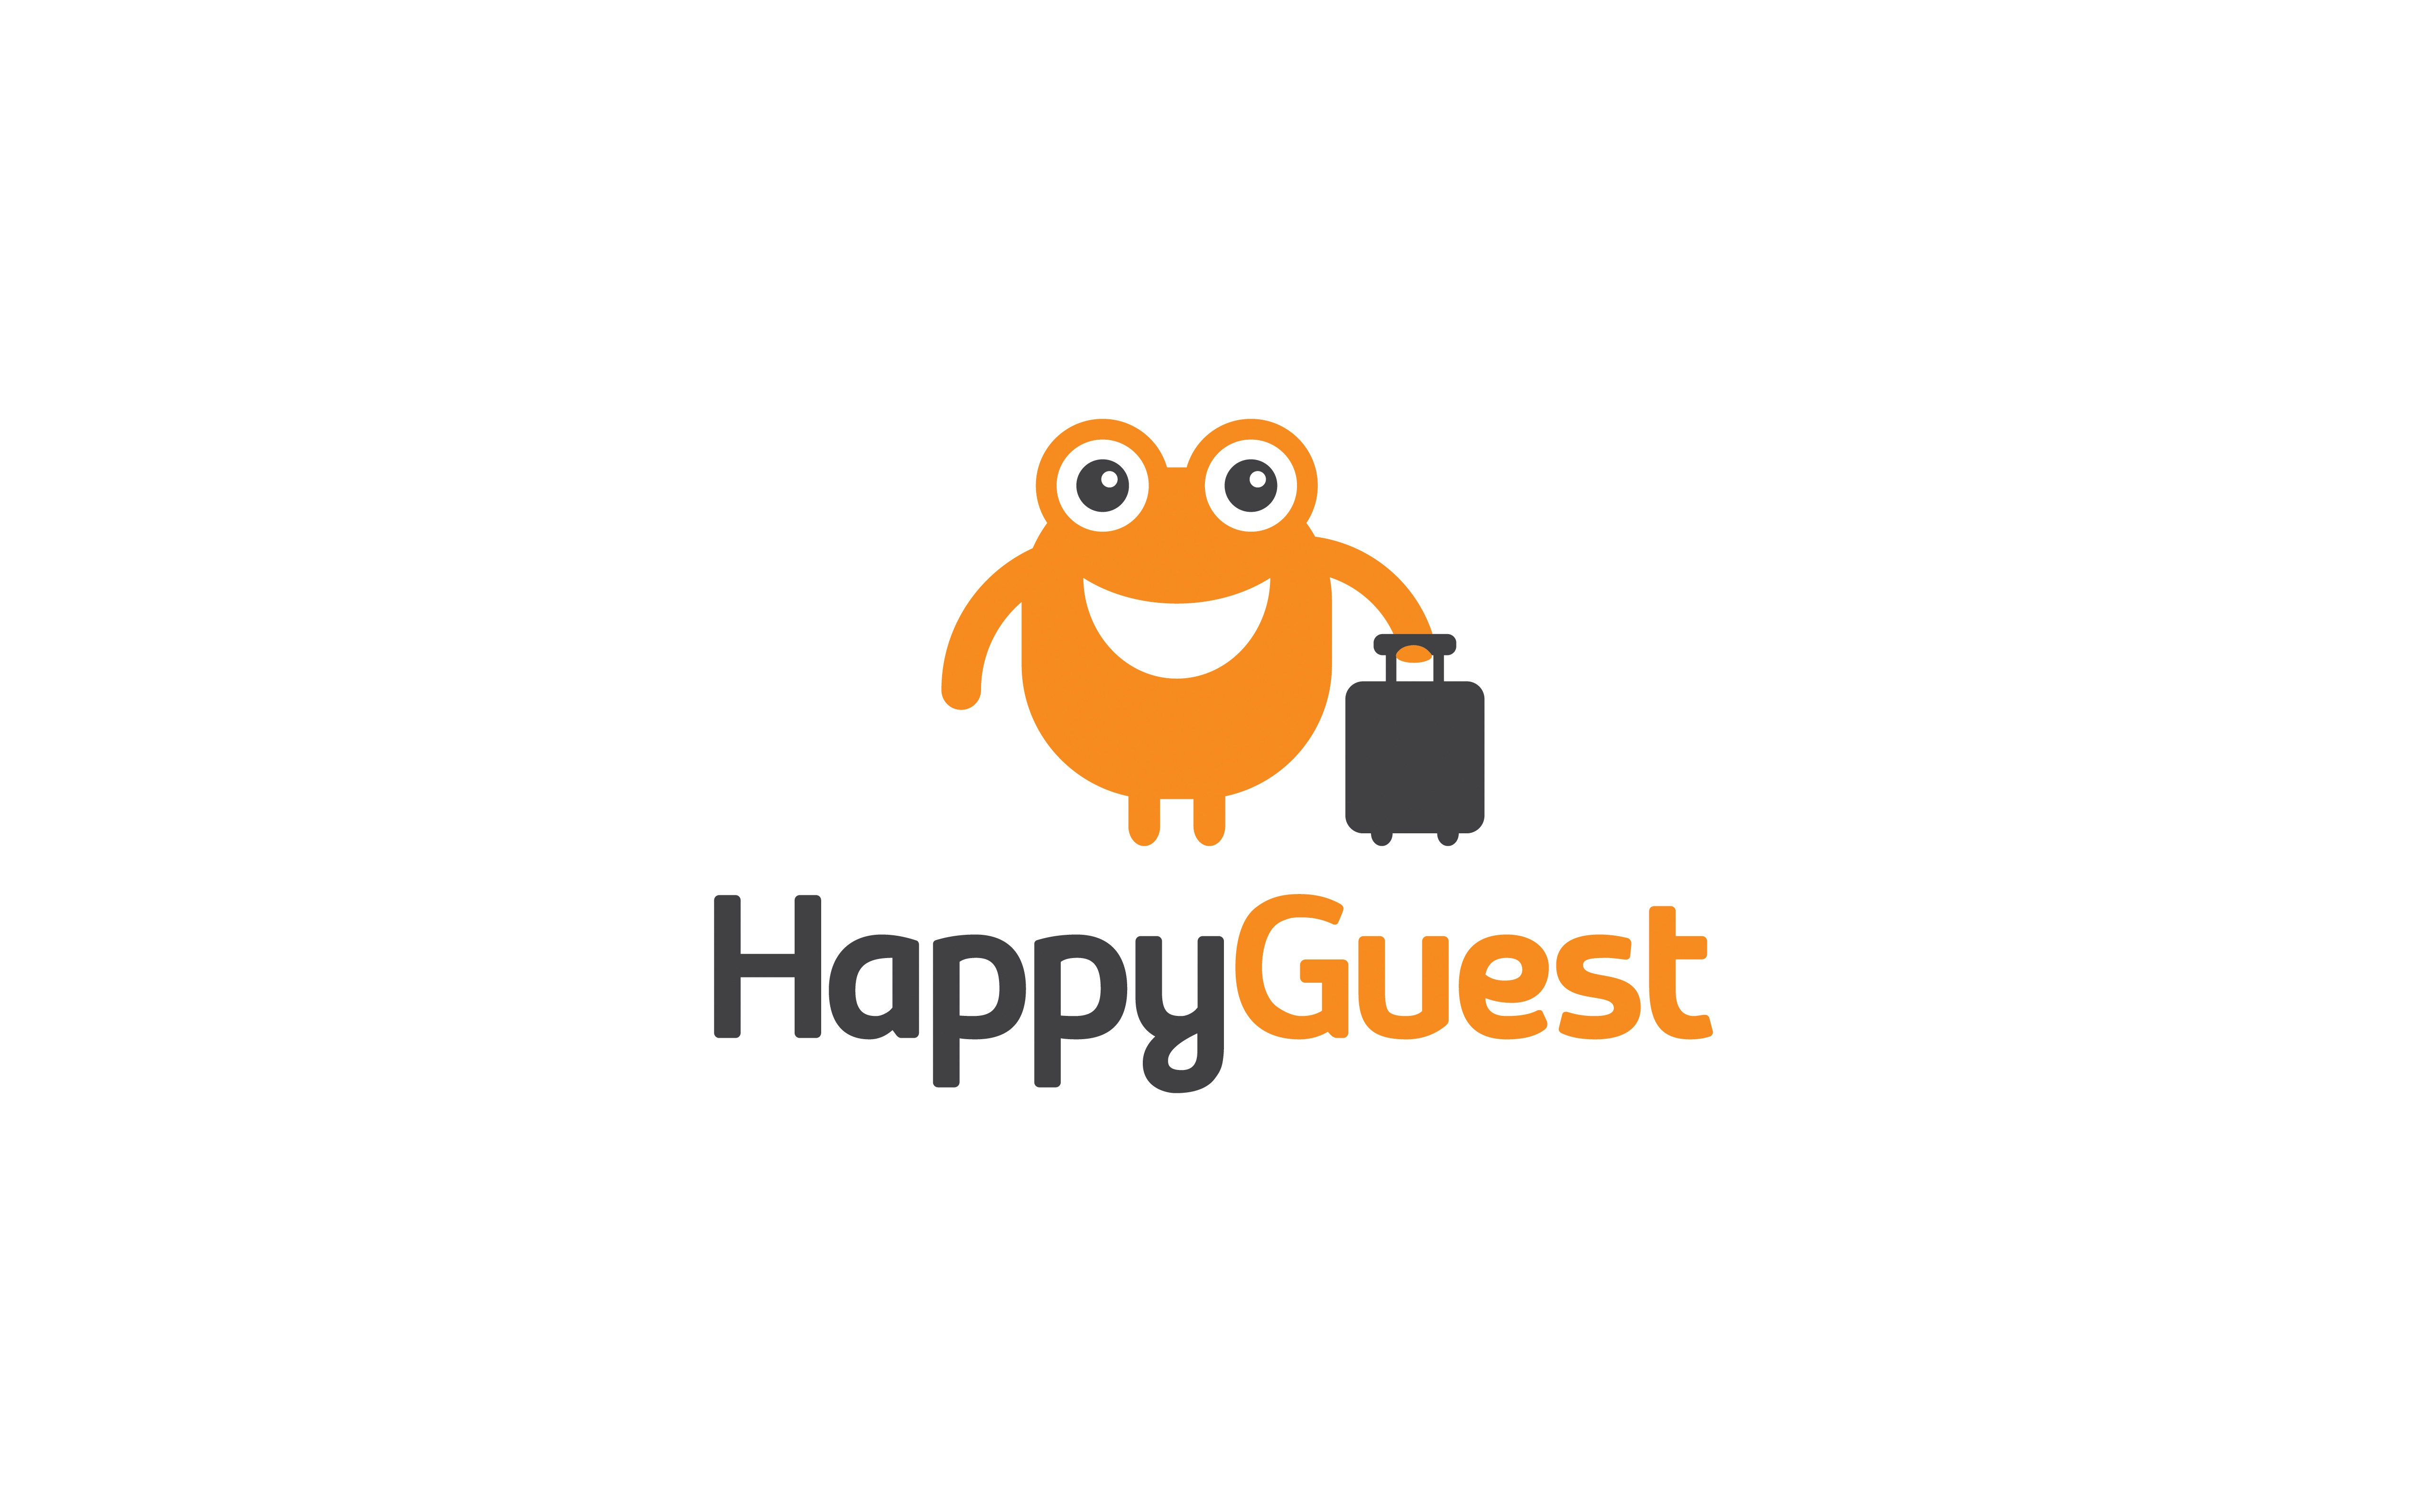 'Happy Guest'  needs a fresh, exciting brand identity to help launch its new business